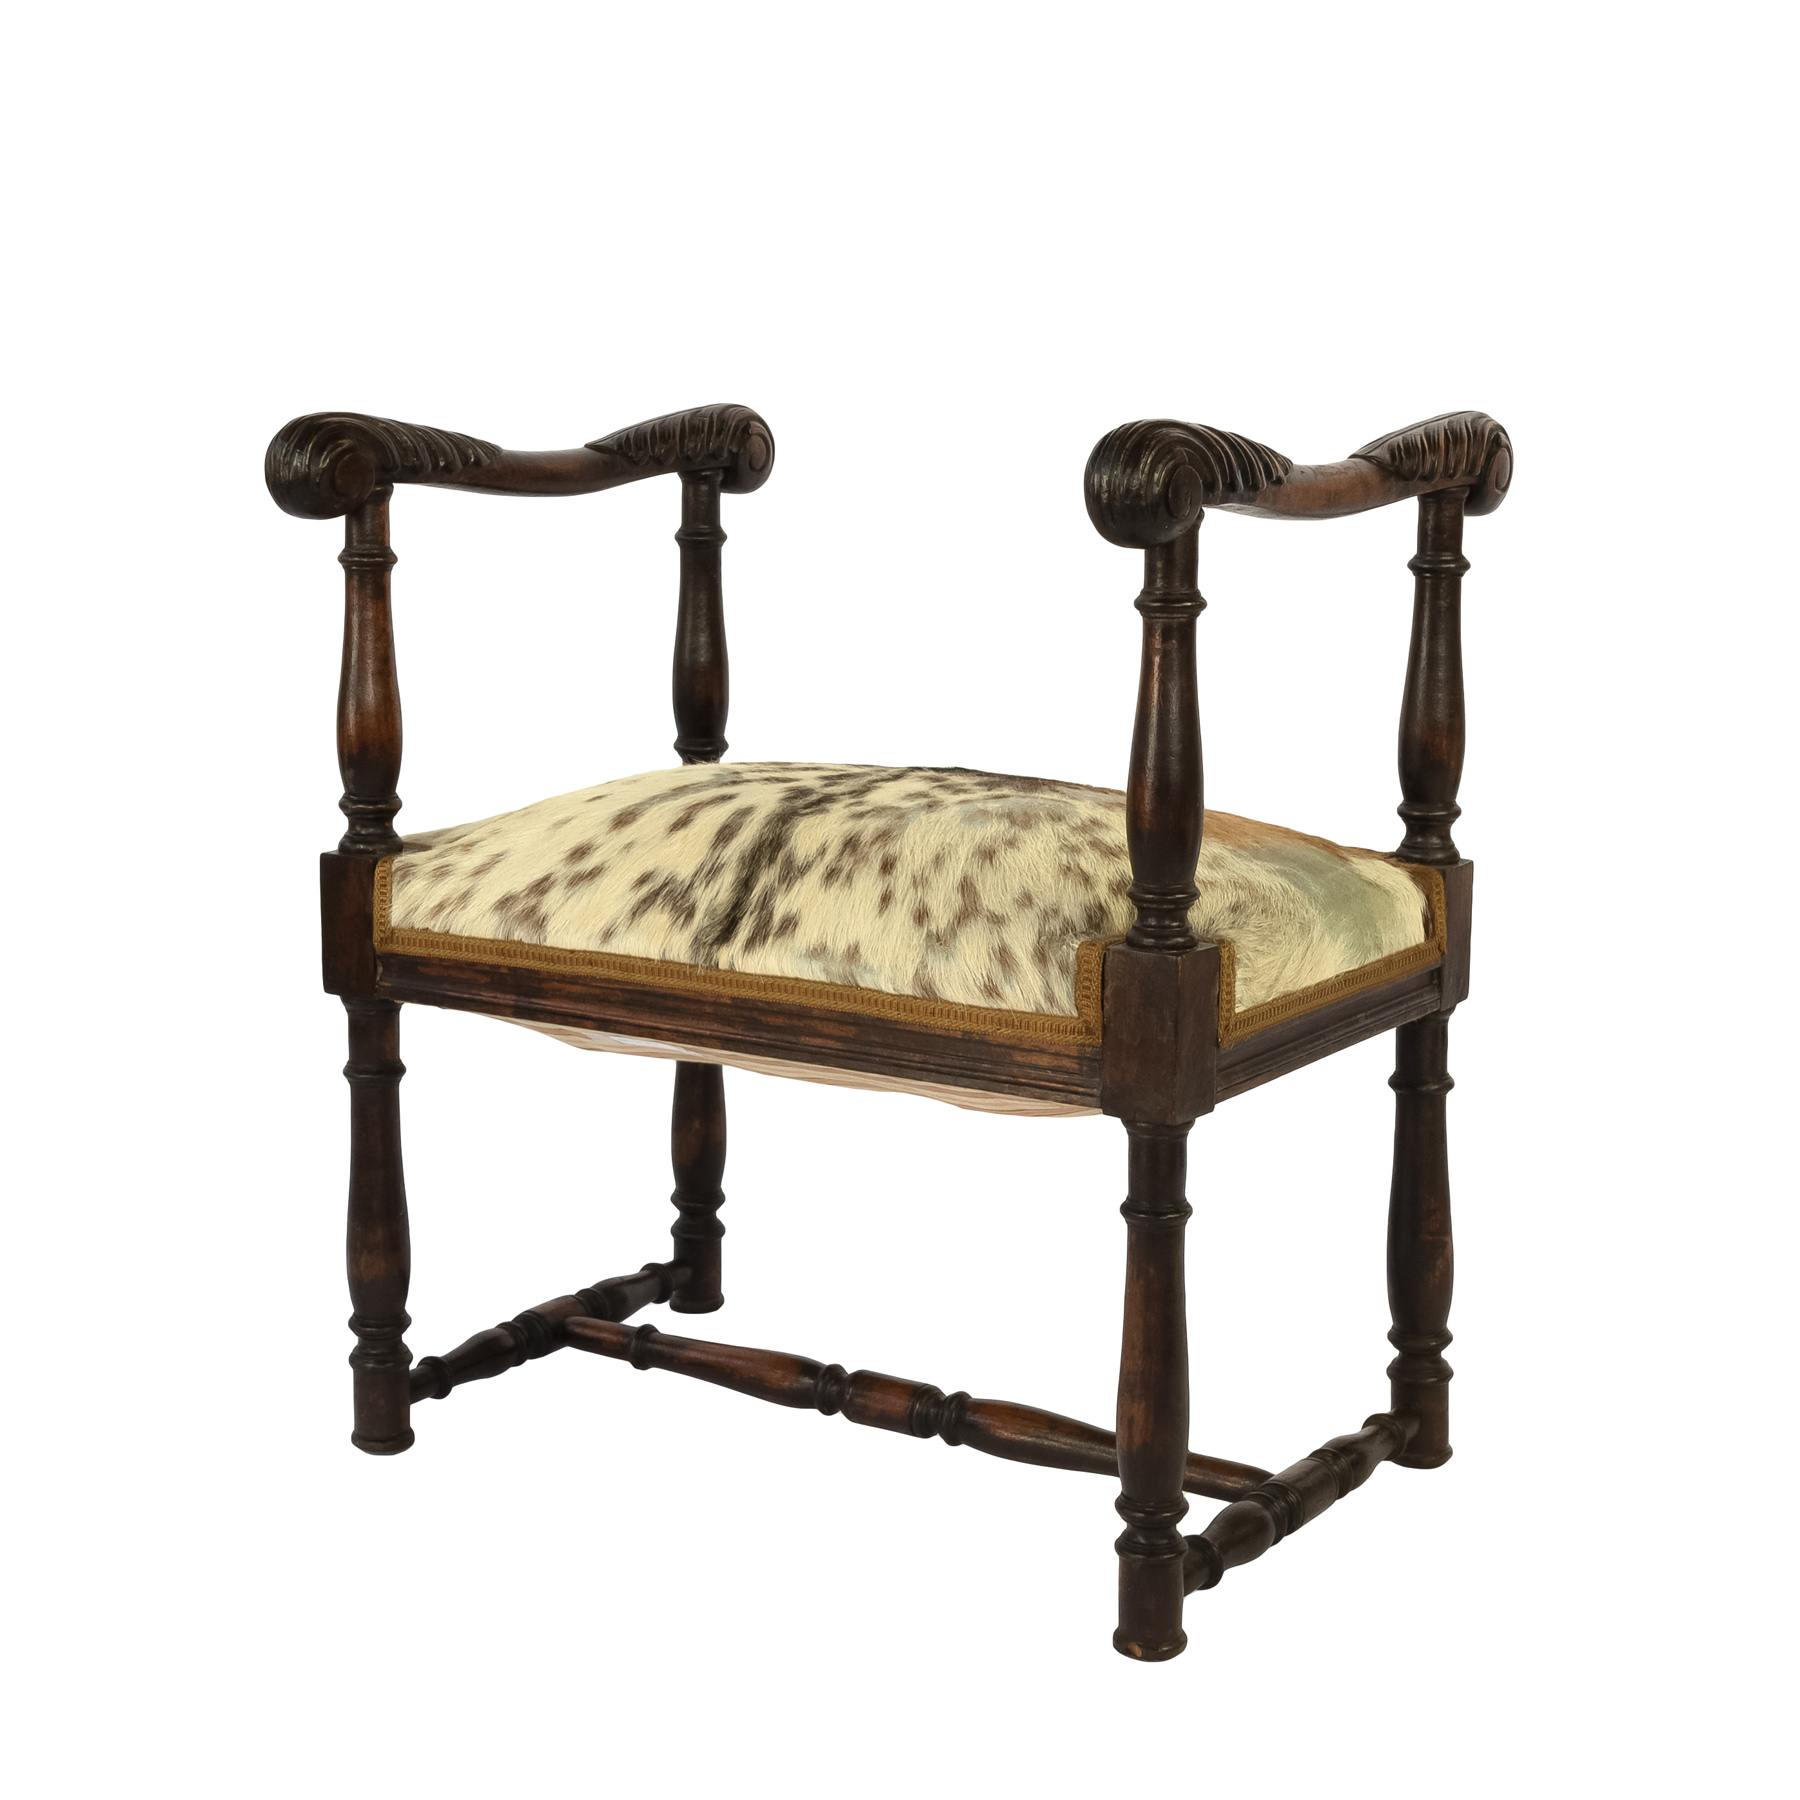 Prime Unusual French 19Th Century Carved Oak Upholstered Stool With Elaborately Carved Arms Creativecarmelina Interior Chair Design Creativecarmelinacom